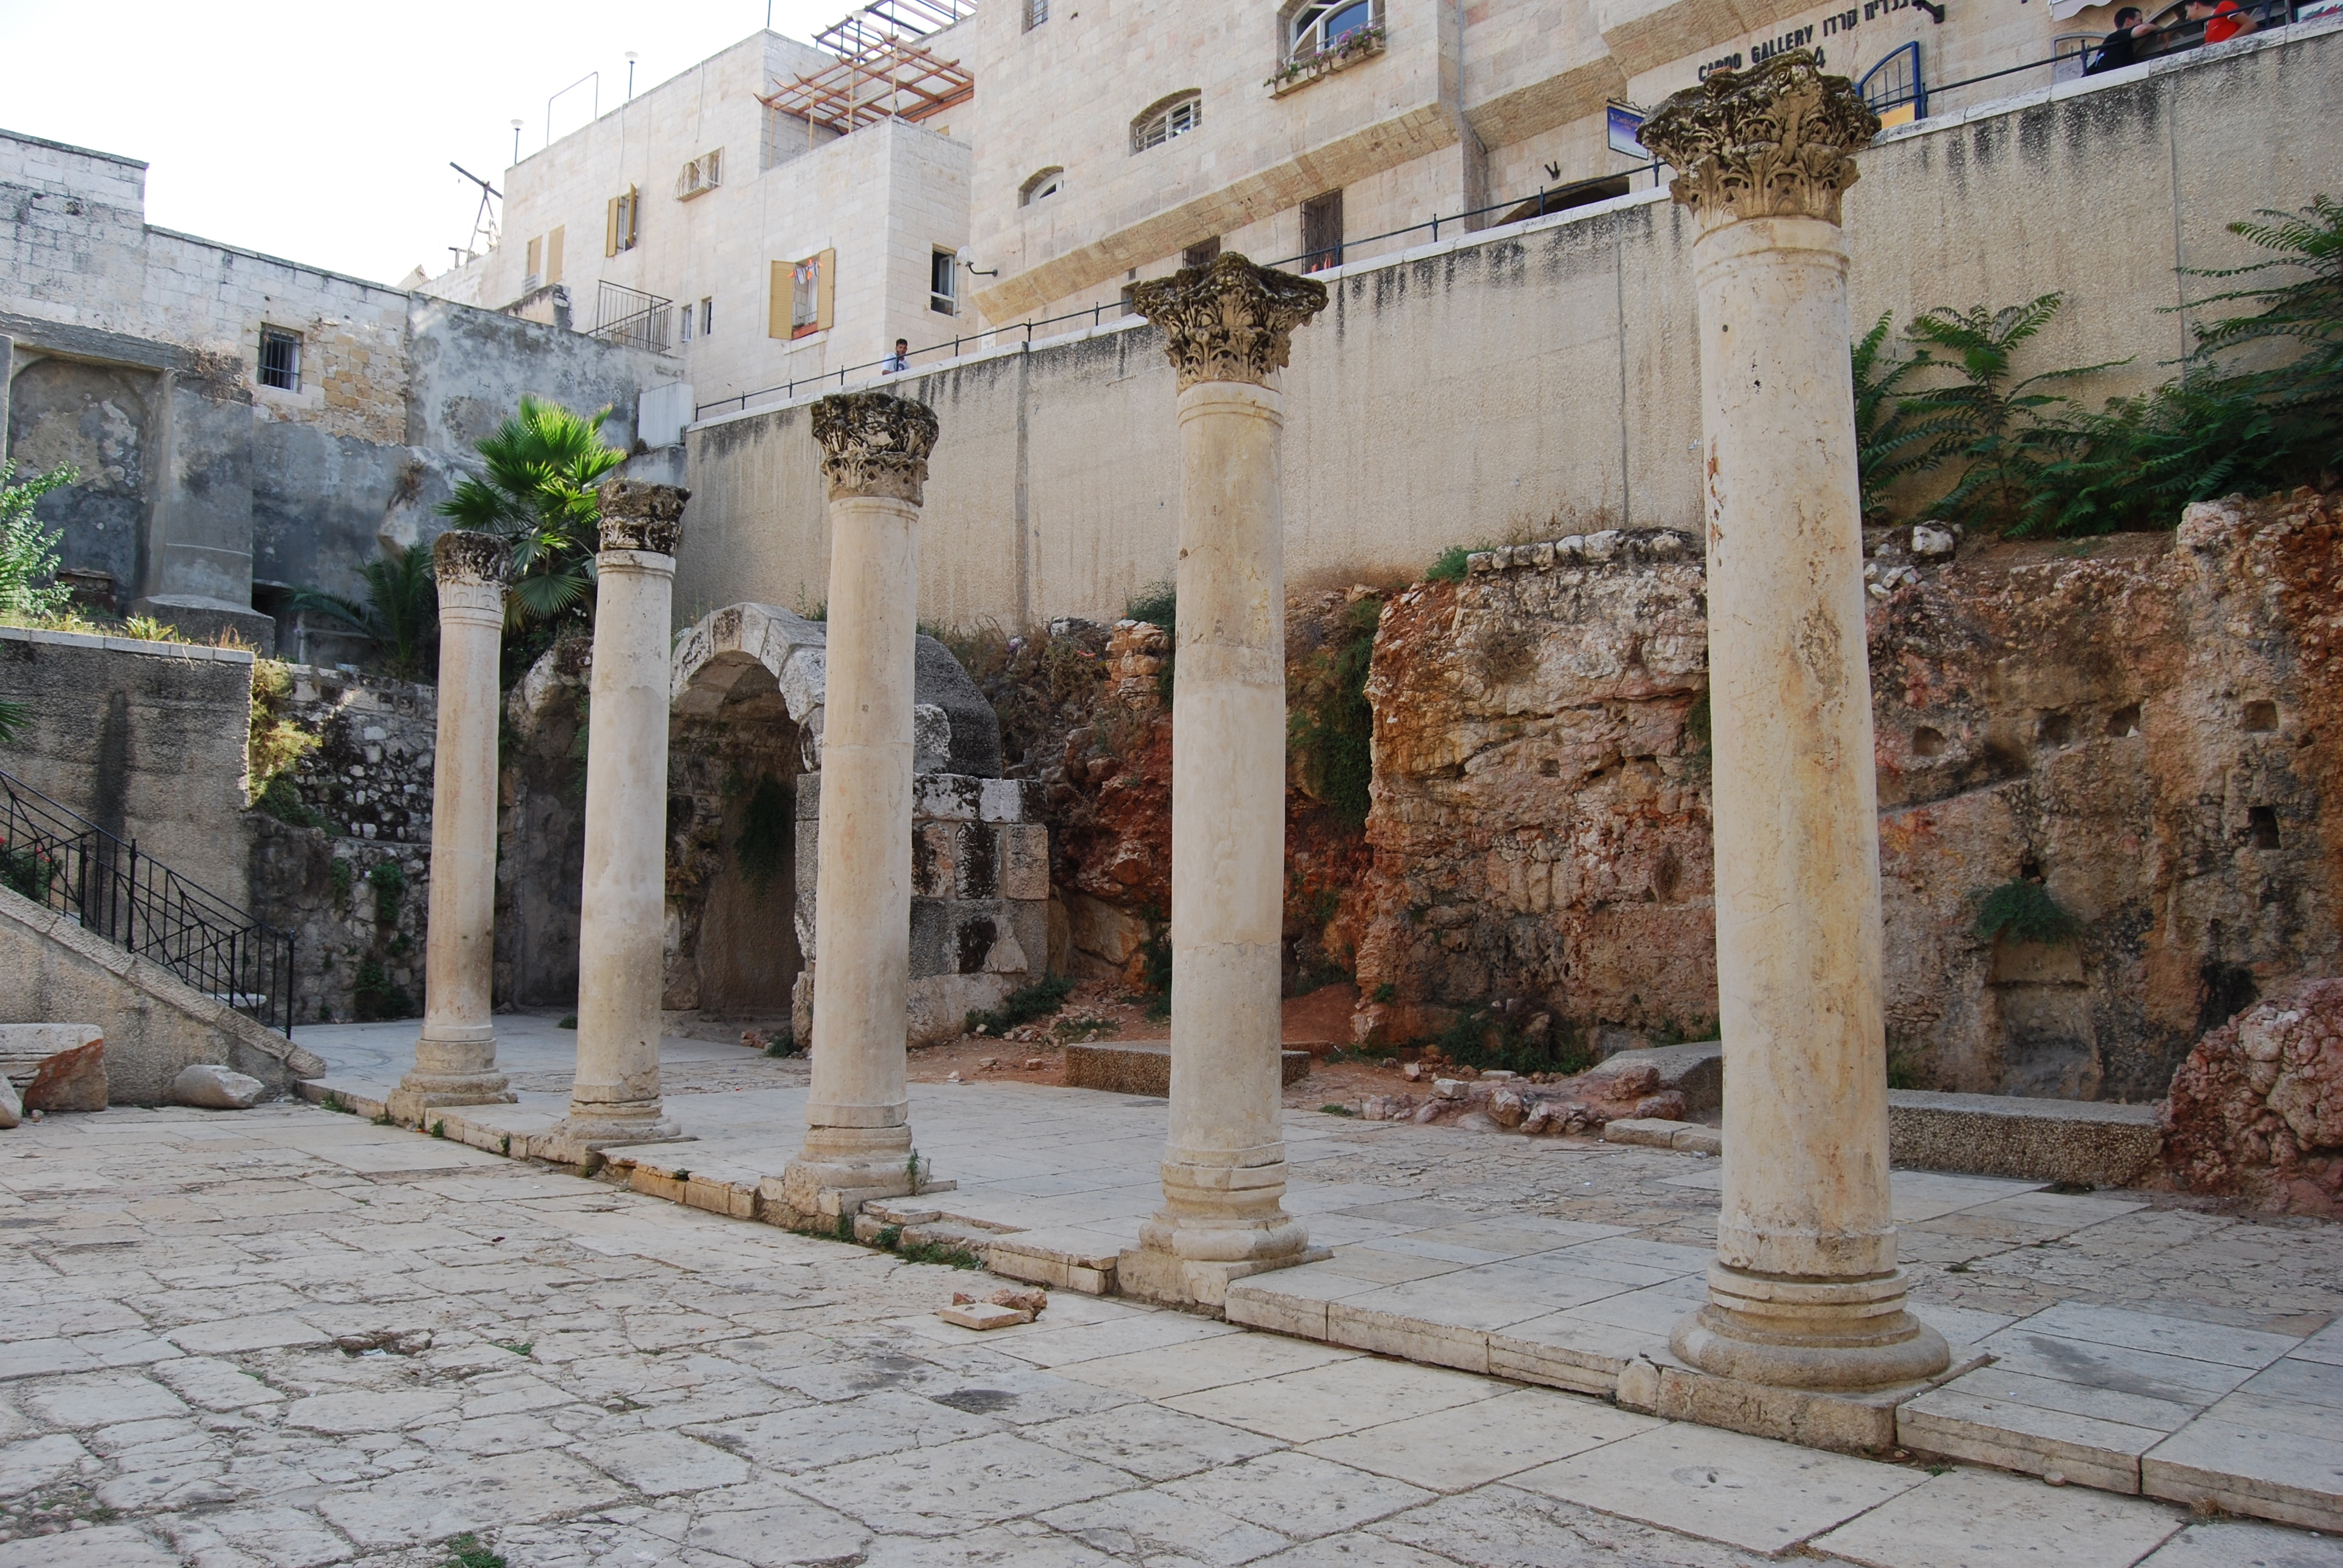 tunnel city jewish girl personals Jerusalem (western wall tunnel, city of david, pool of bethesda, southern wall excavations and its jerusalem pilgrim road and many more in the old city of jerusalem and outside the old city) khirbat al-minya.